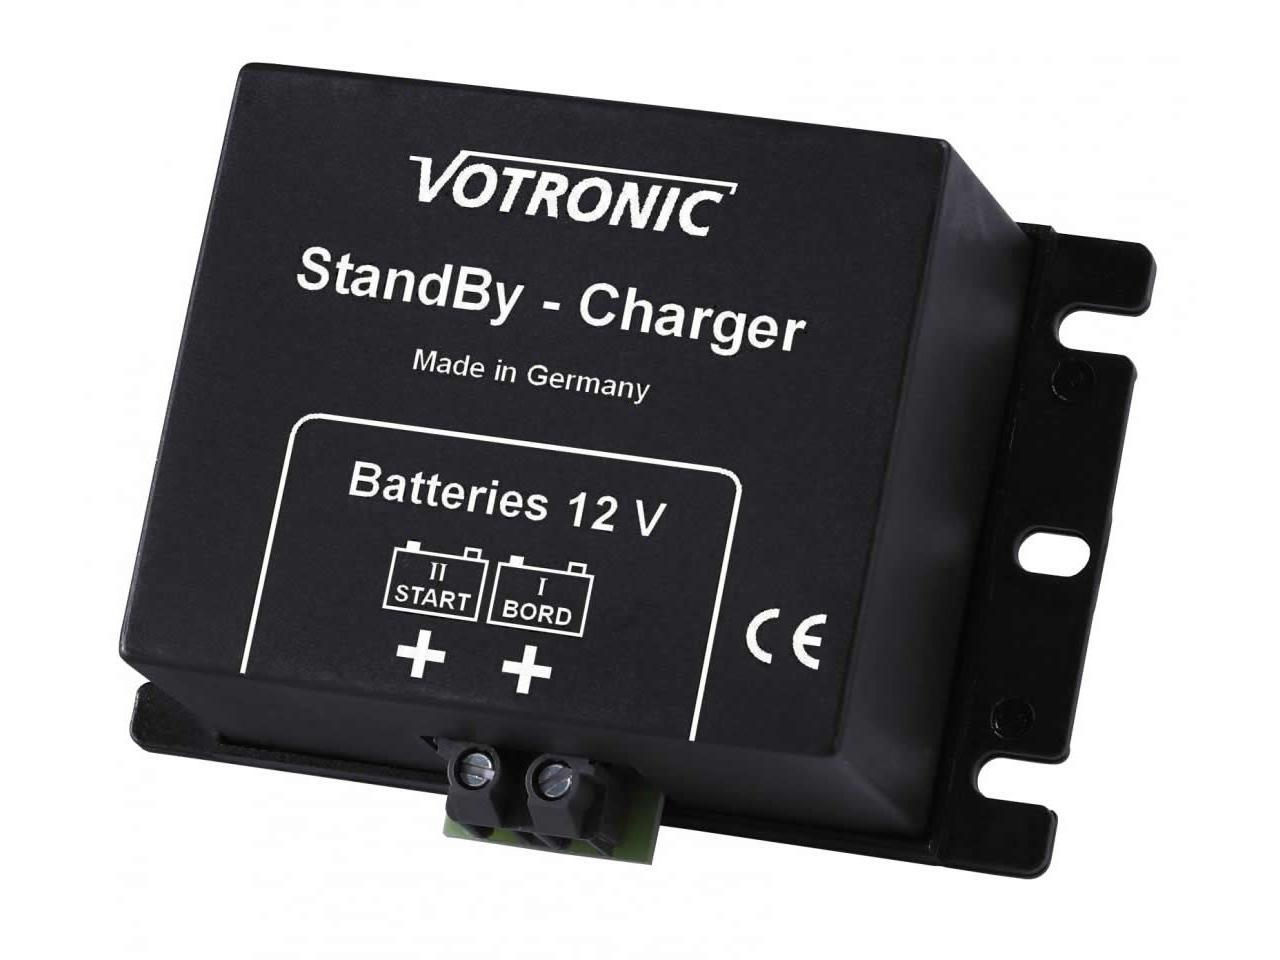 Votronic standby charger